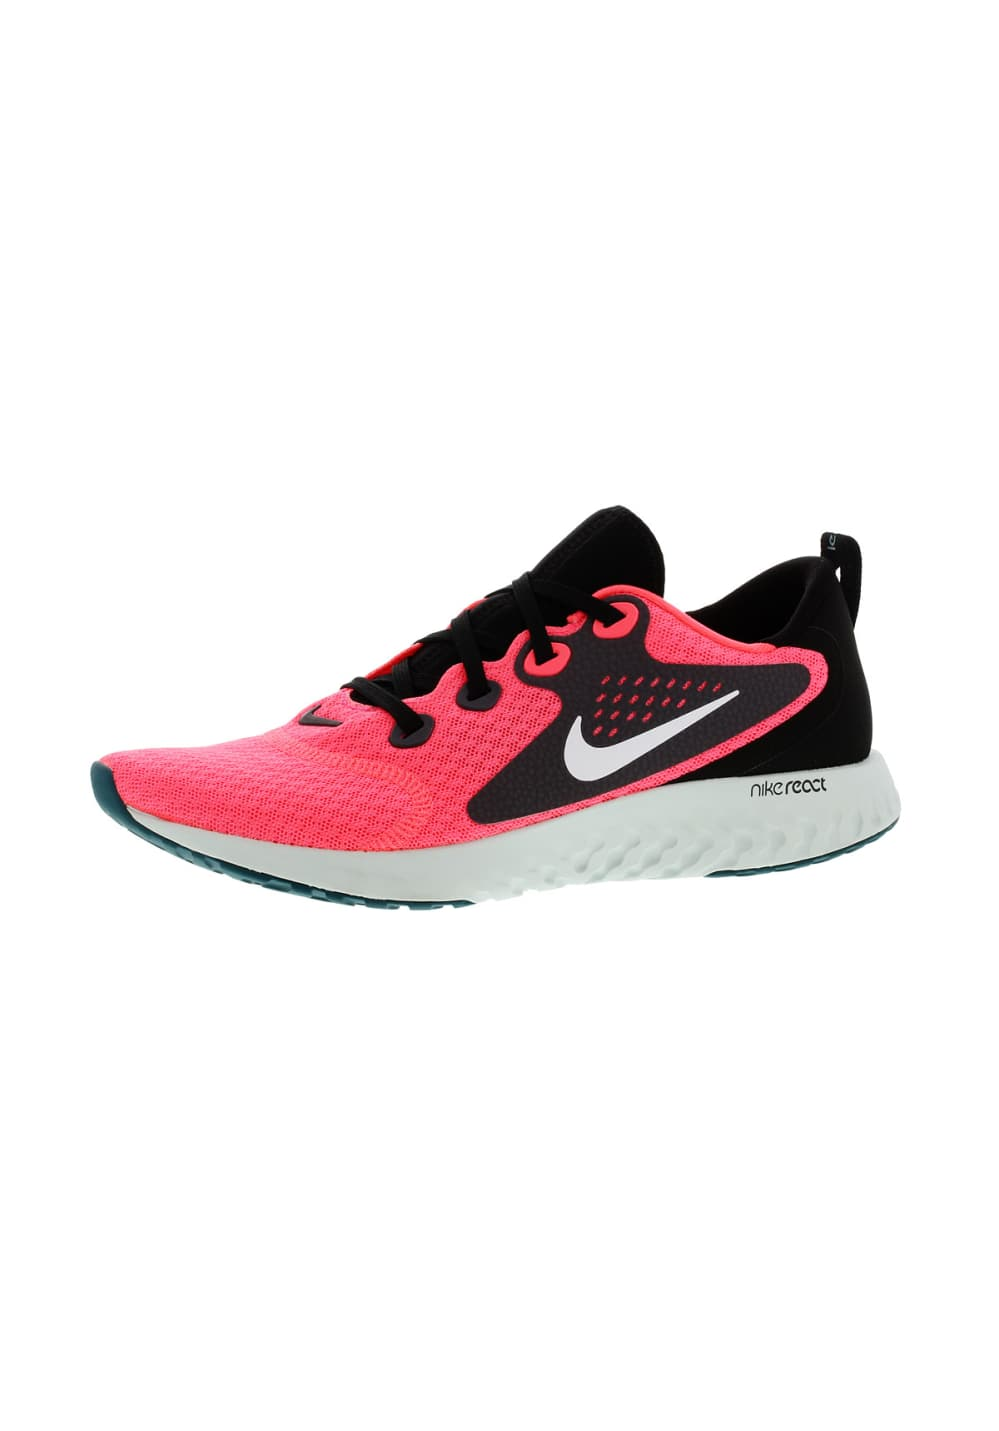 c07f5ad2ab7f7 Nike Legend React - Running shoes for Women - Pink | 21RUN